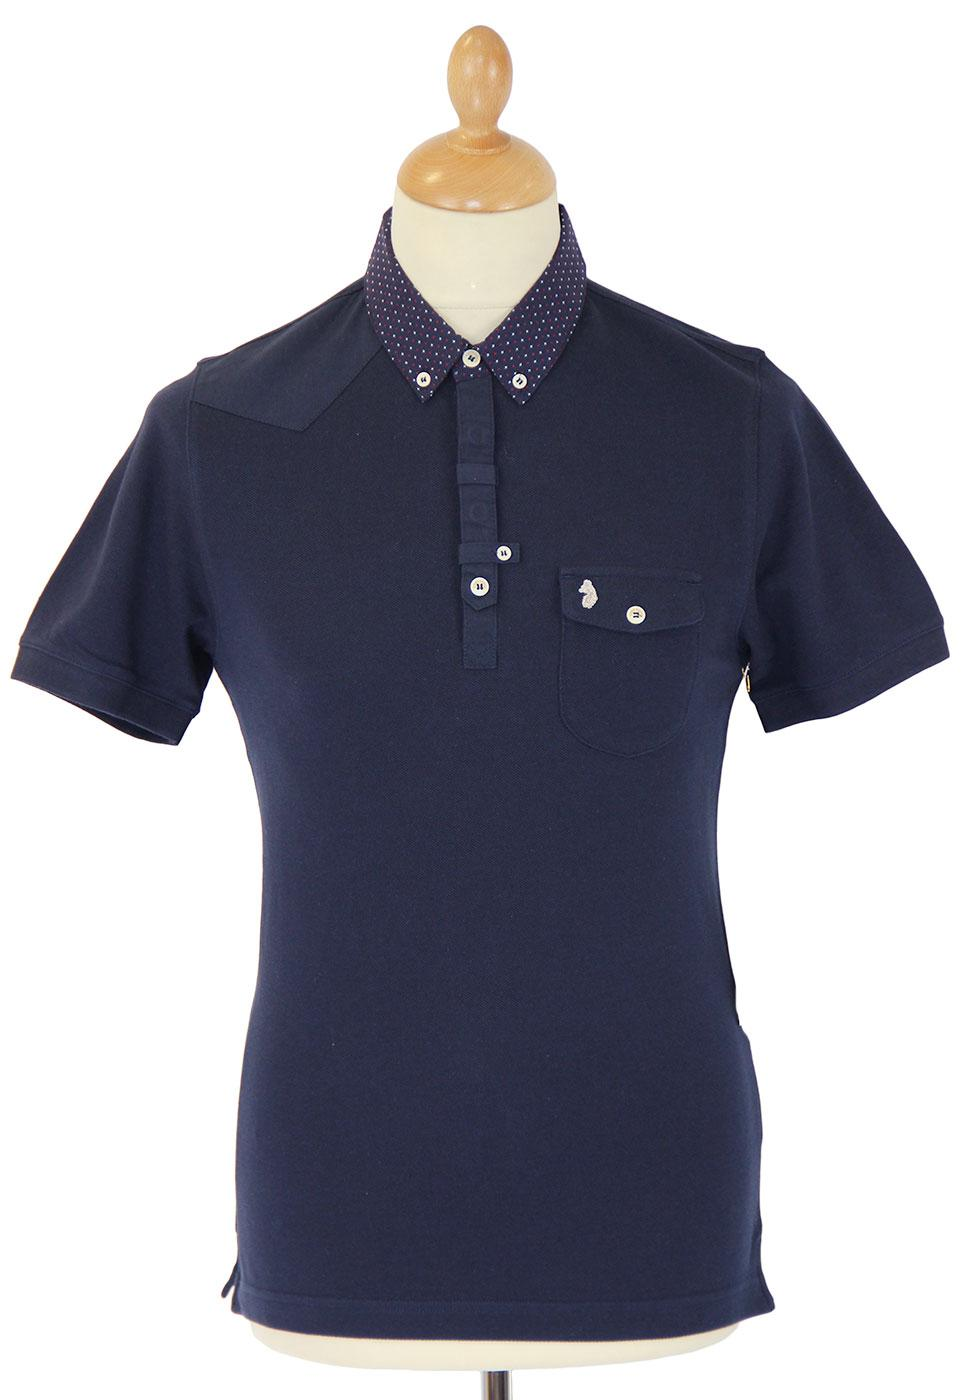 Razors LUKE 1977 Retro Mod Op Art Trim Polo Top DN